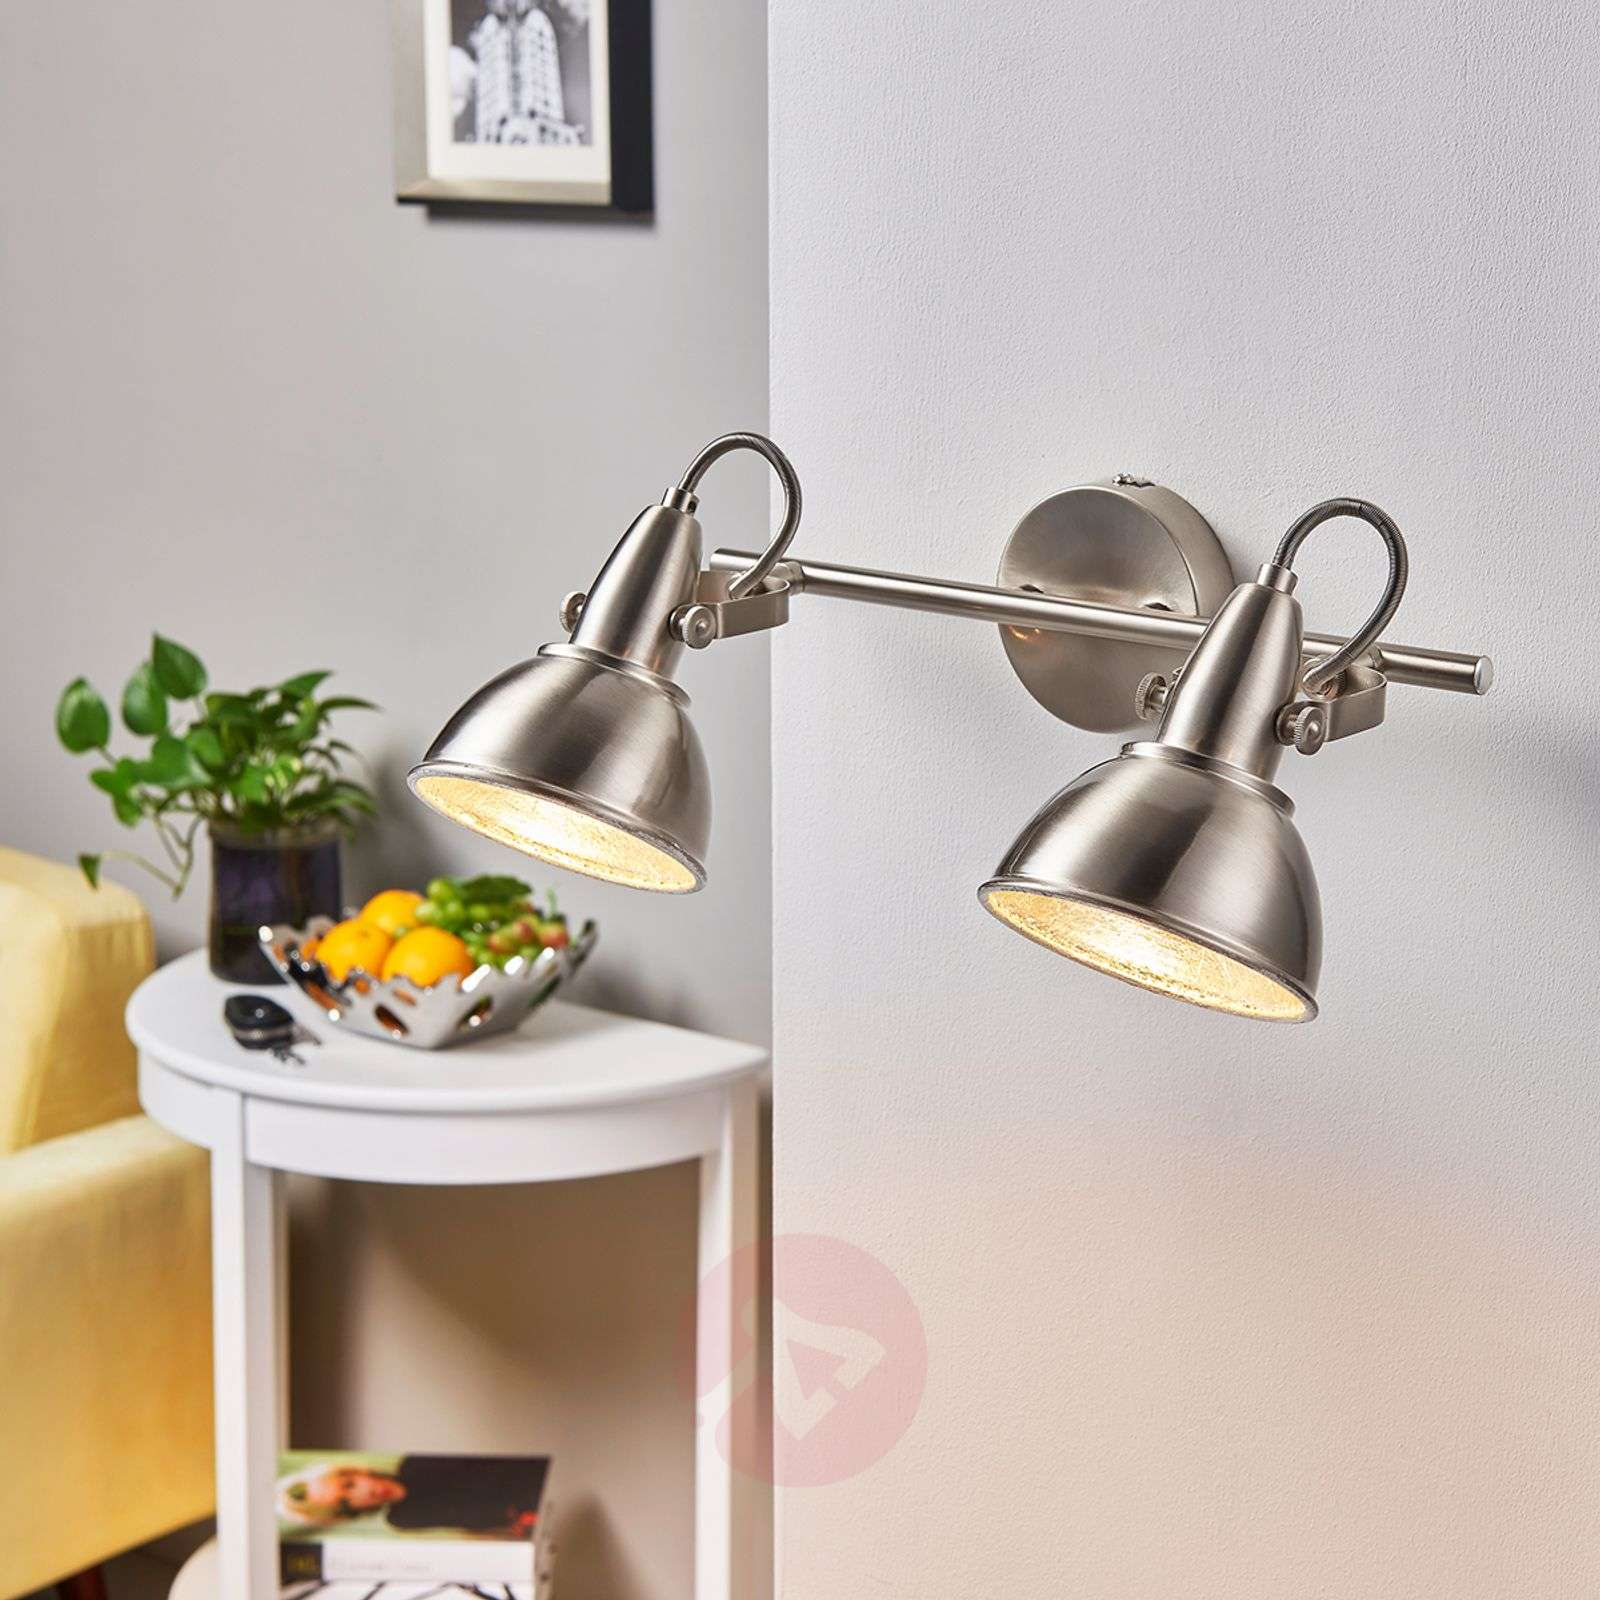 Ceiling lamp Julin with two lampshades-9620729-03